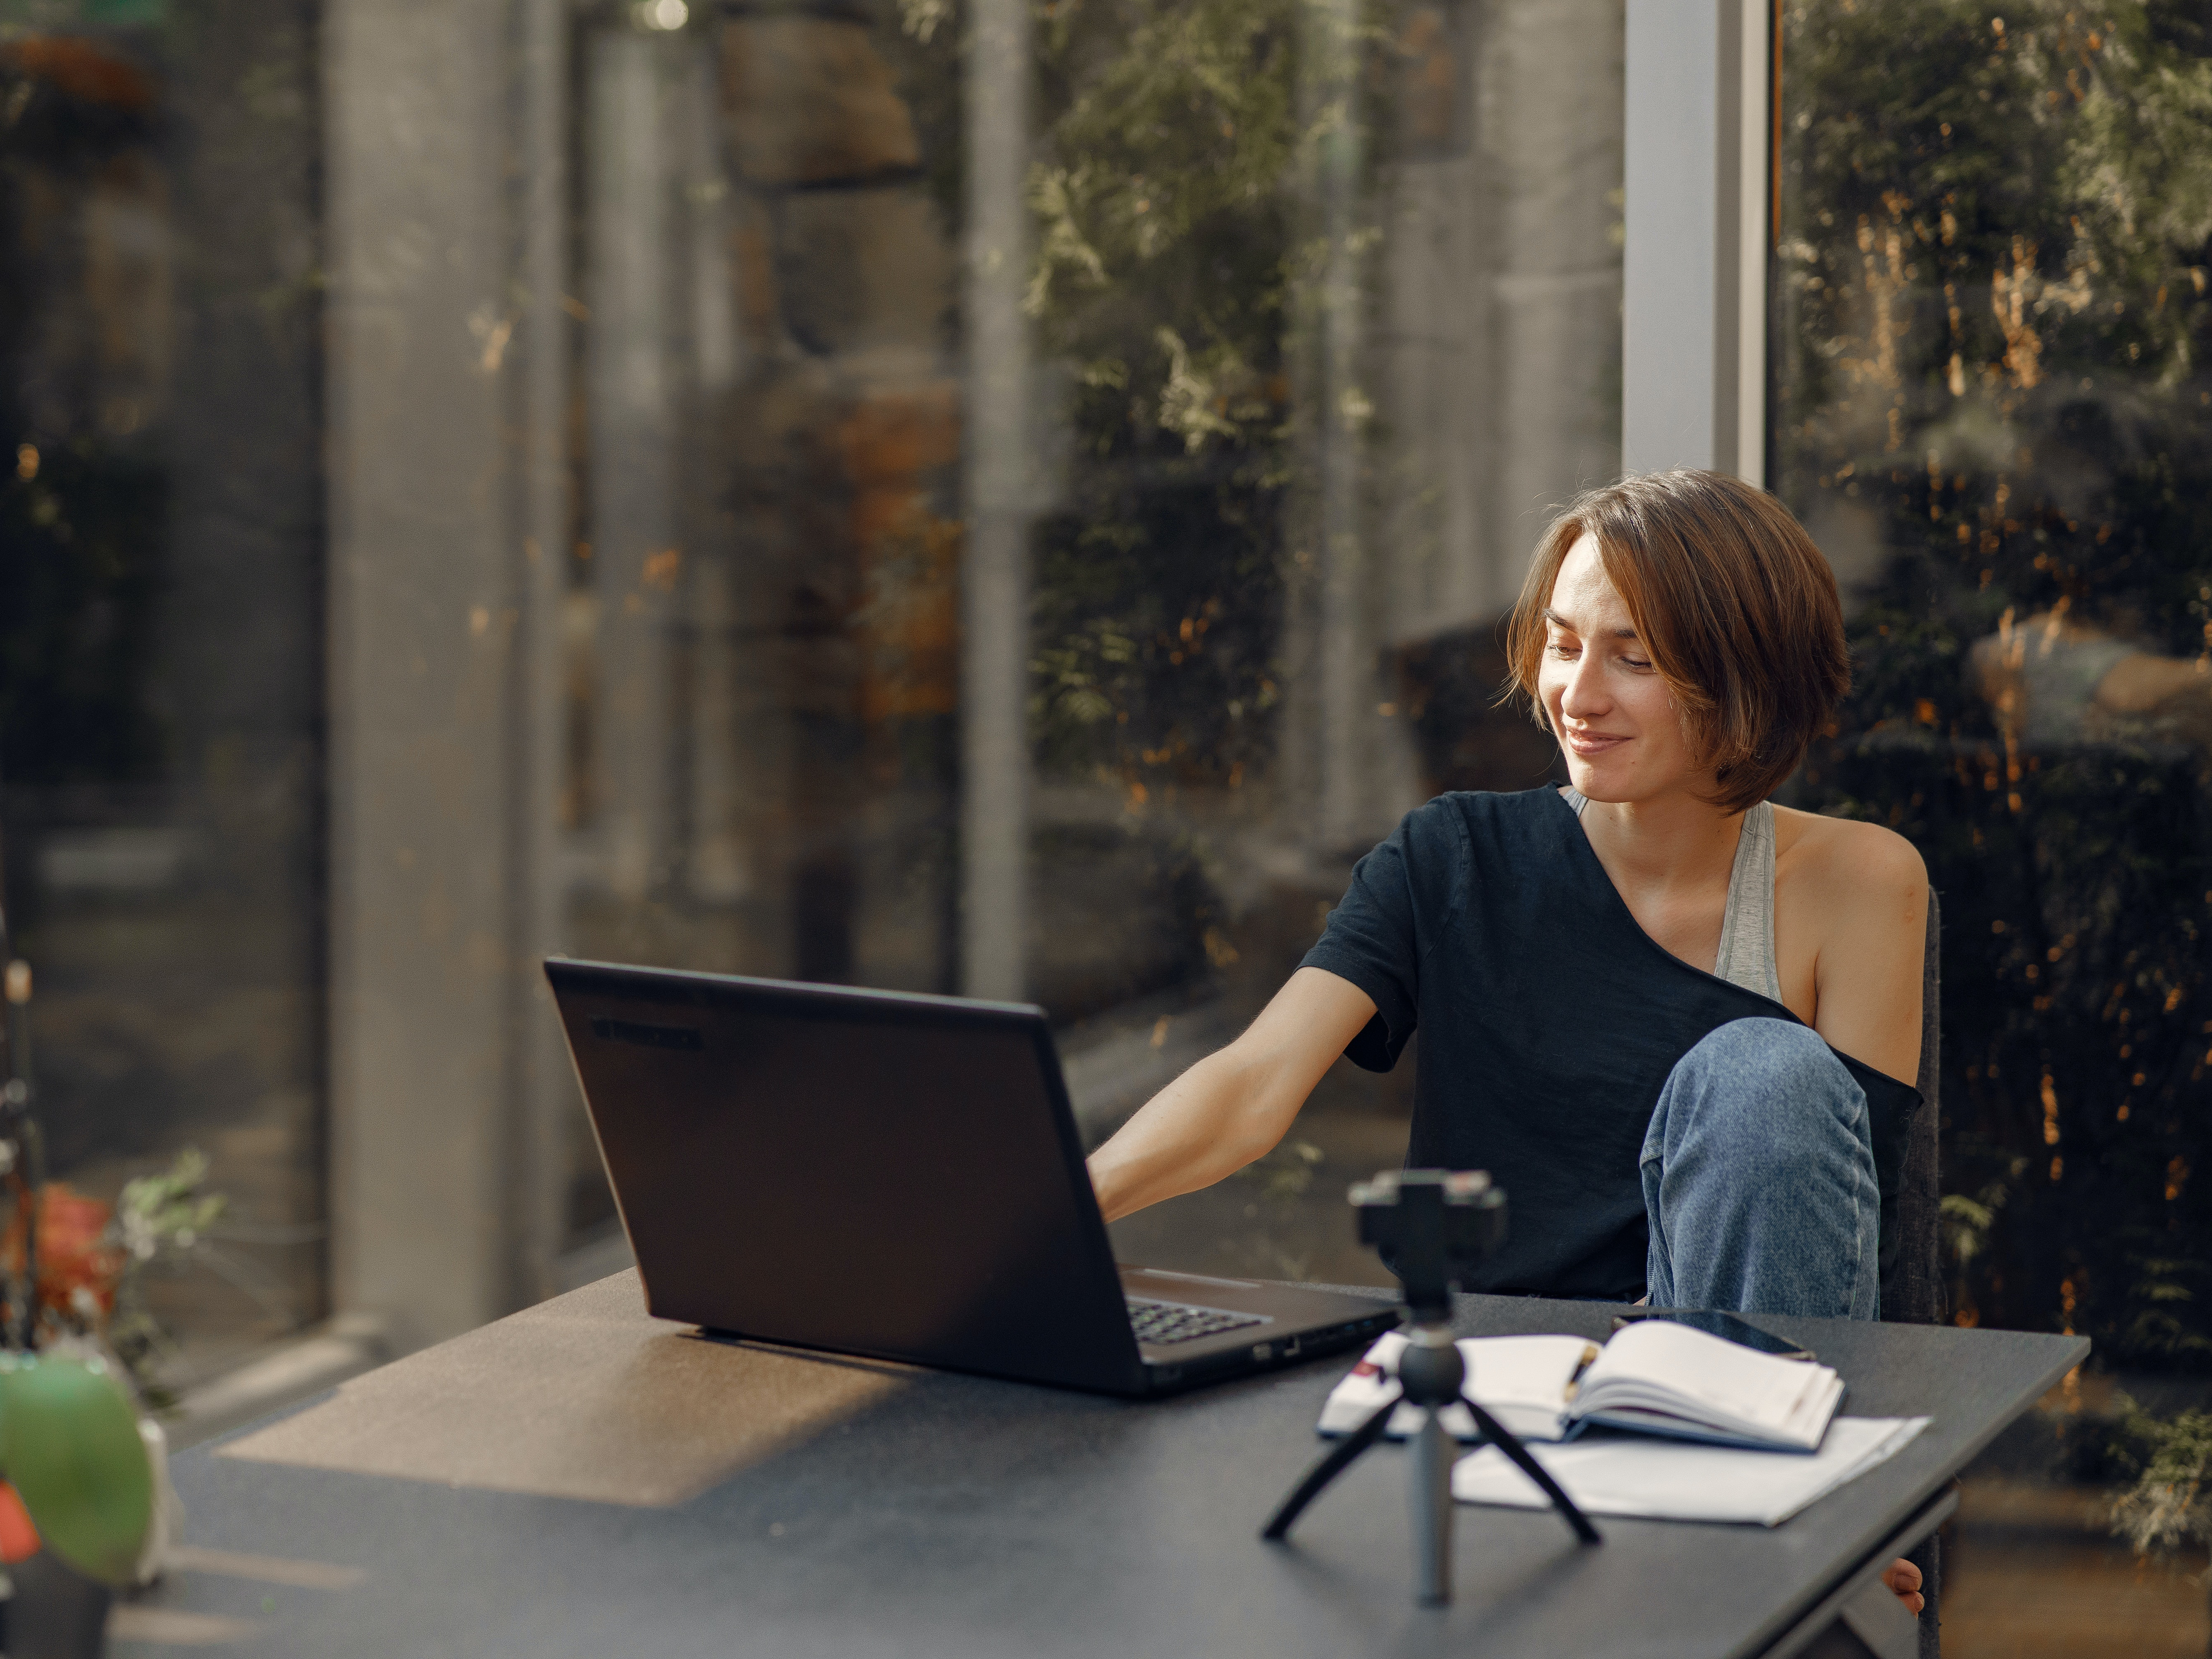 woman-working-from-home-4017430